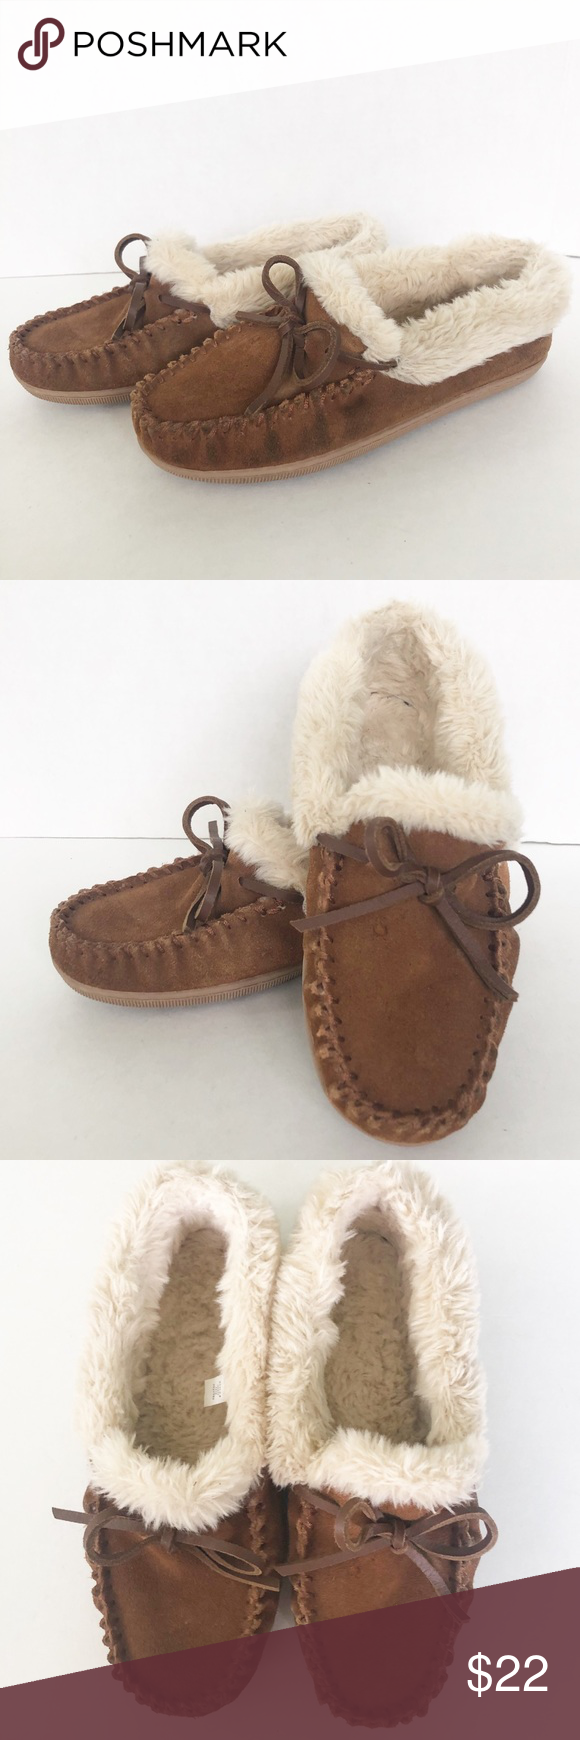 J. Crew Suede Shearling Slippers with